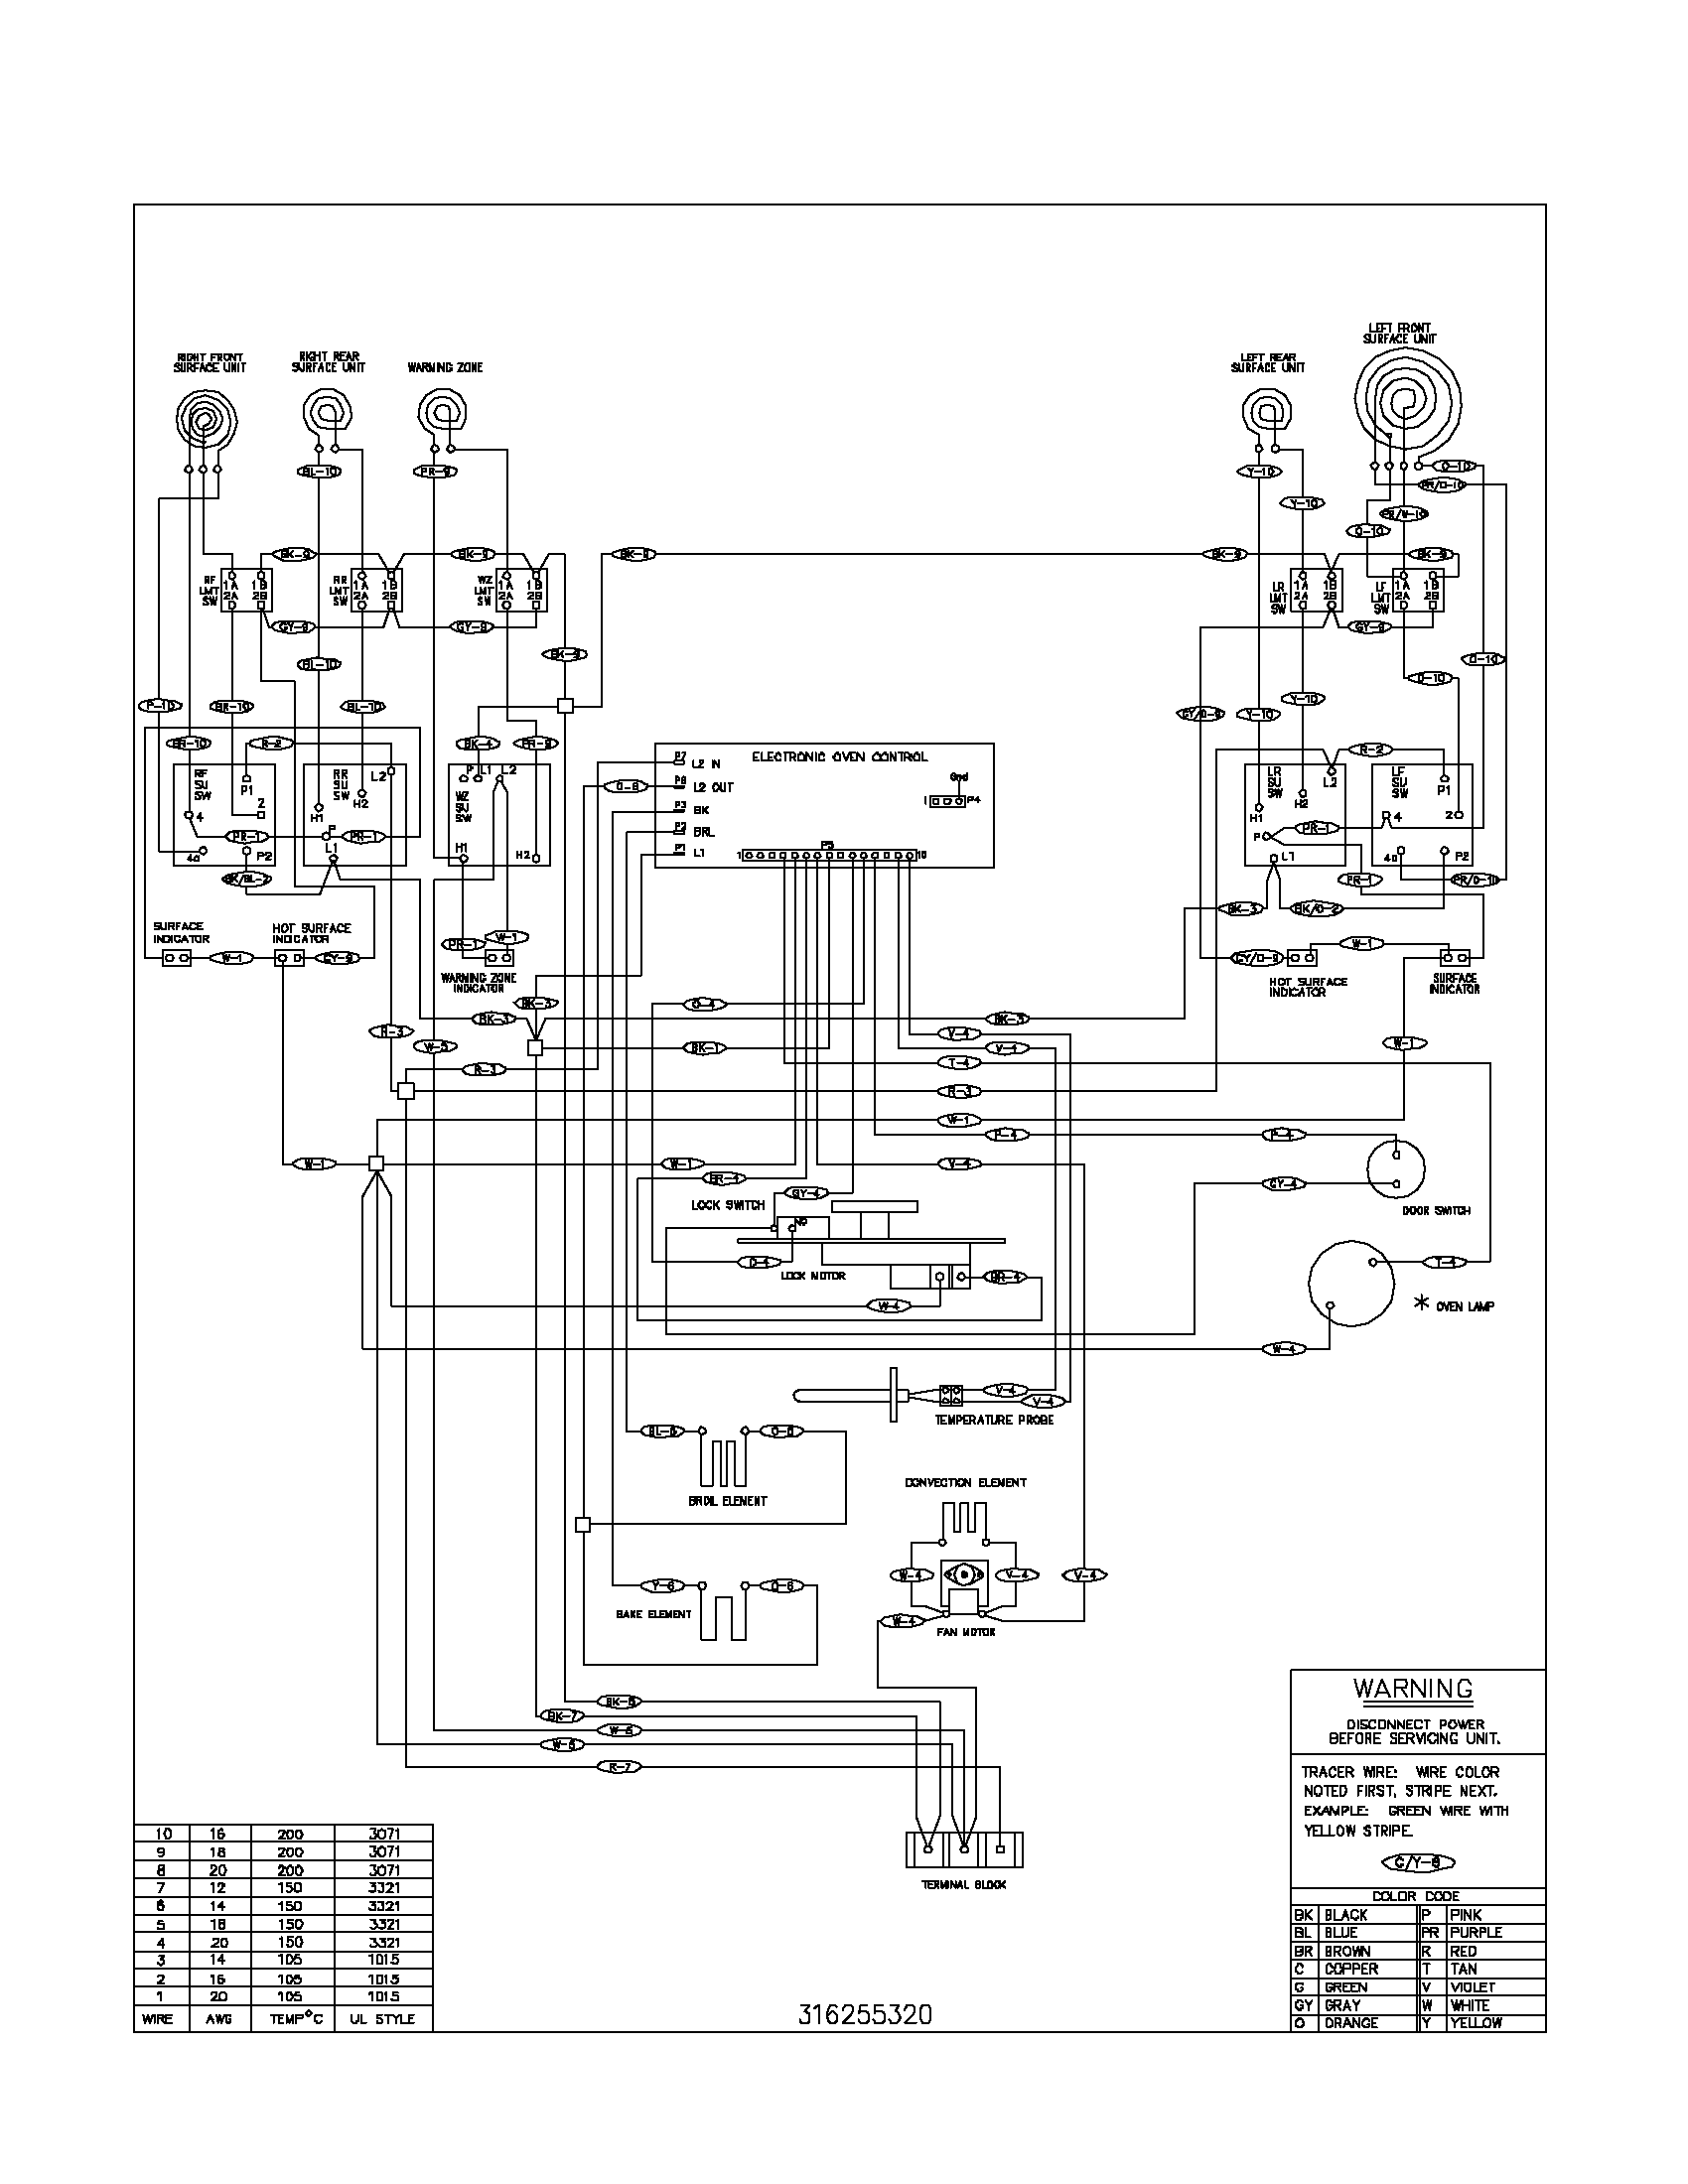 Index en besides 460422761884622220 likewise Land Rover Discovery Neutral Safety Switch Location further Yamaha Yzf R1 Motorcycle Wiring Diagram further Appliance. on electrical wiring diagram honda city